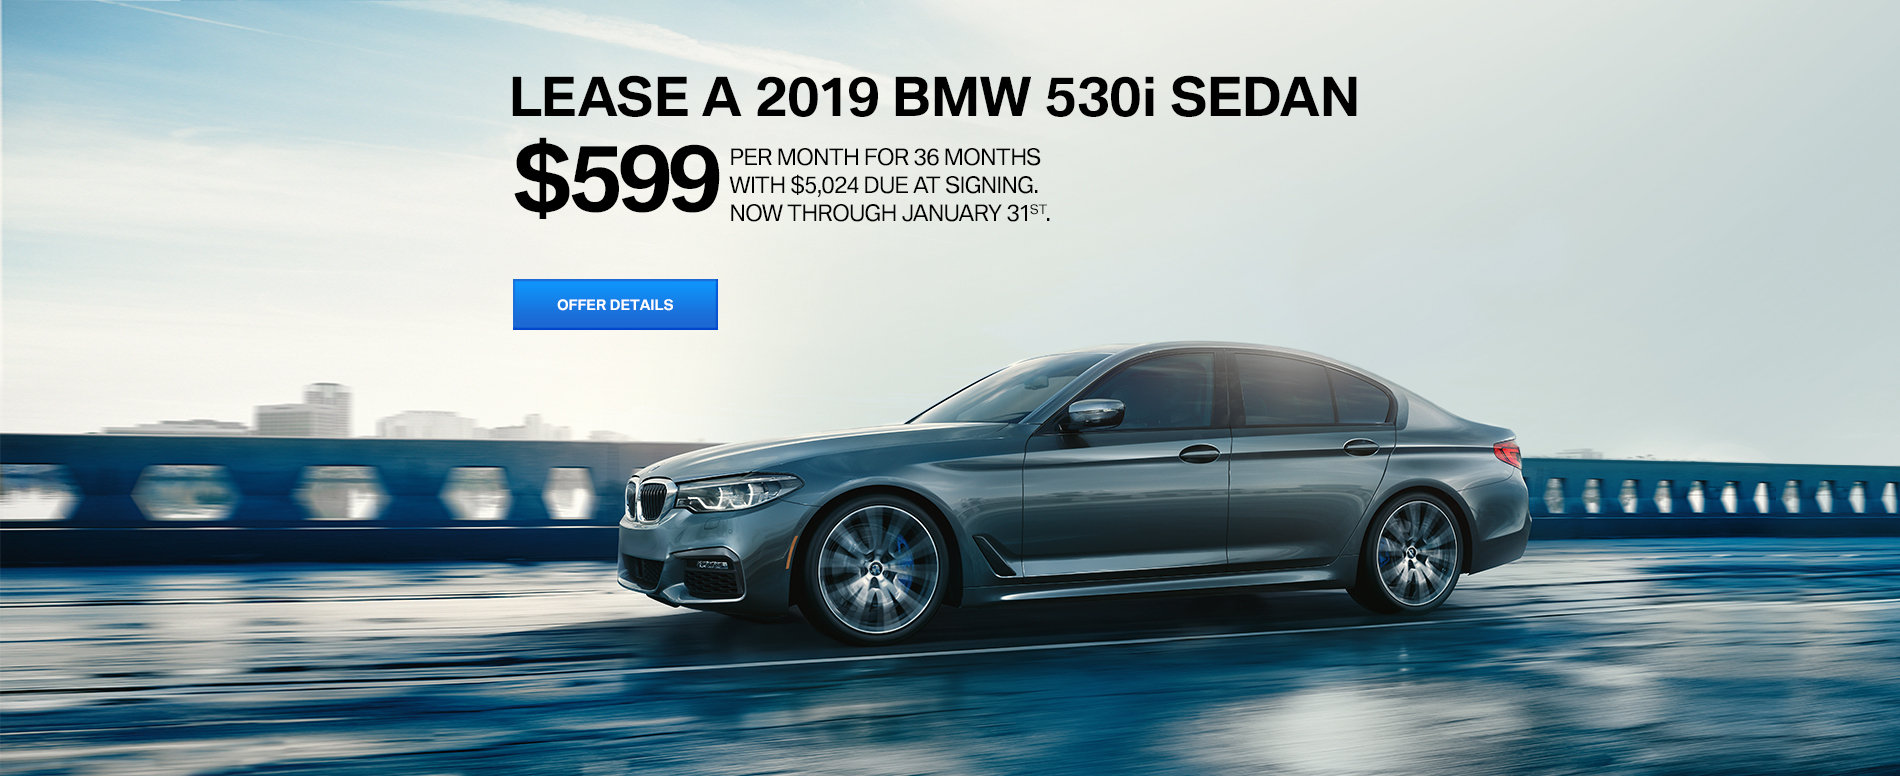 LEASE A 2019 BMW 530i FOR $599/MONTH FOR 36 MONTHS WITH $5,024 D